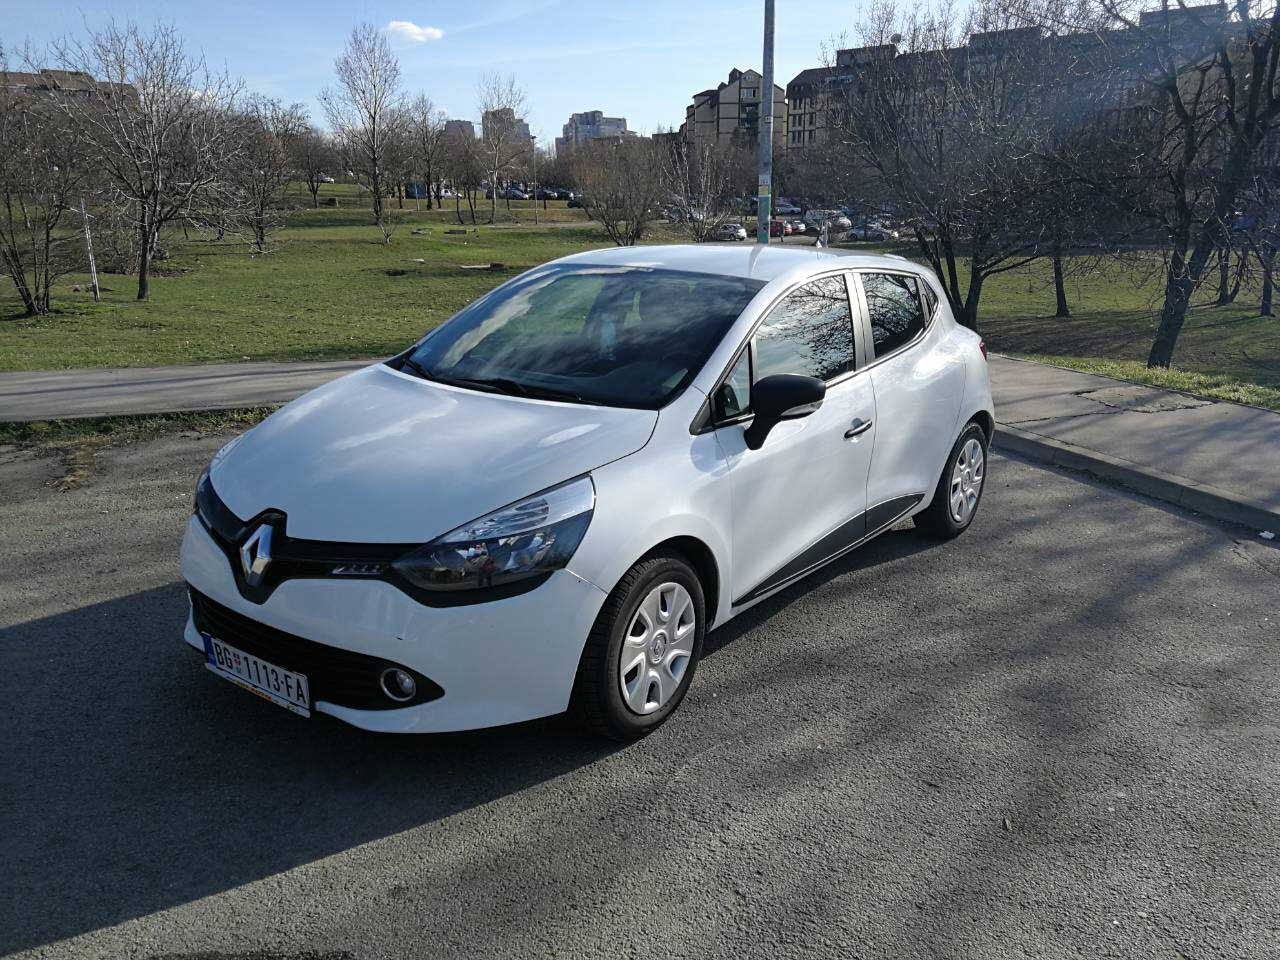 Renault Clio 15 dci manual Easy Rent A Car Beograd